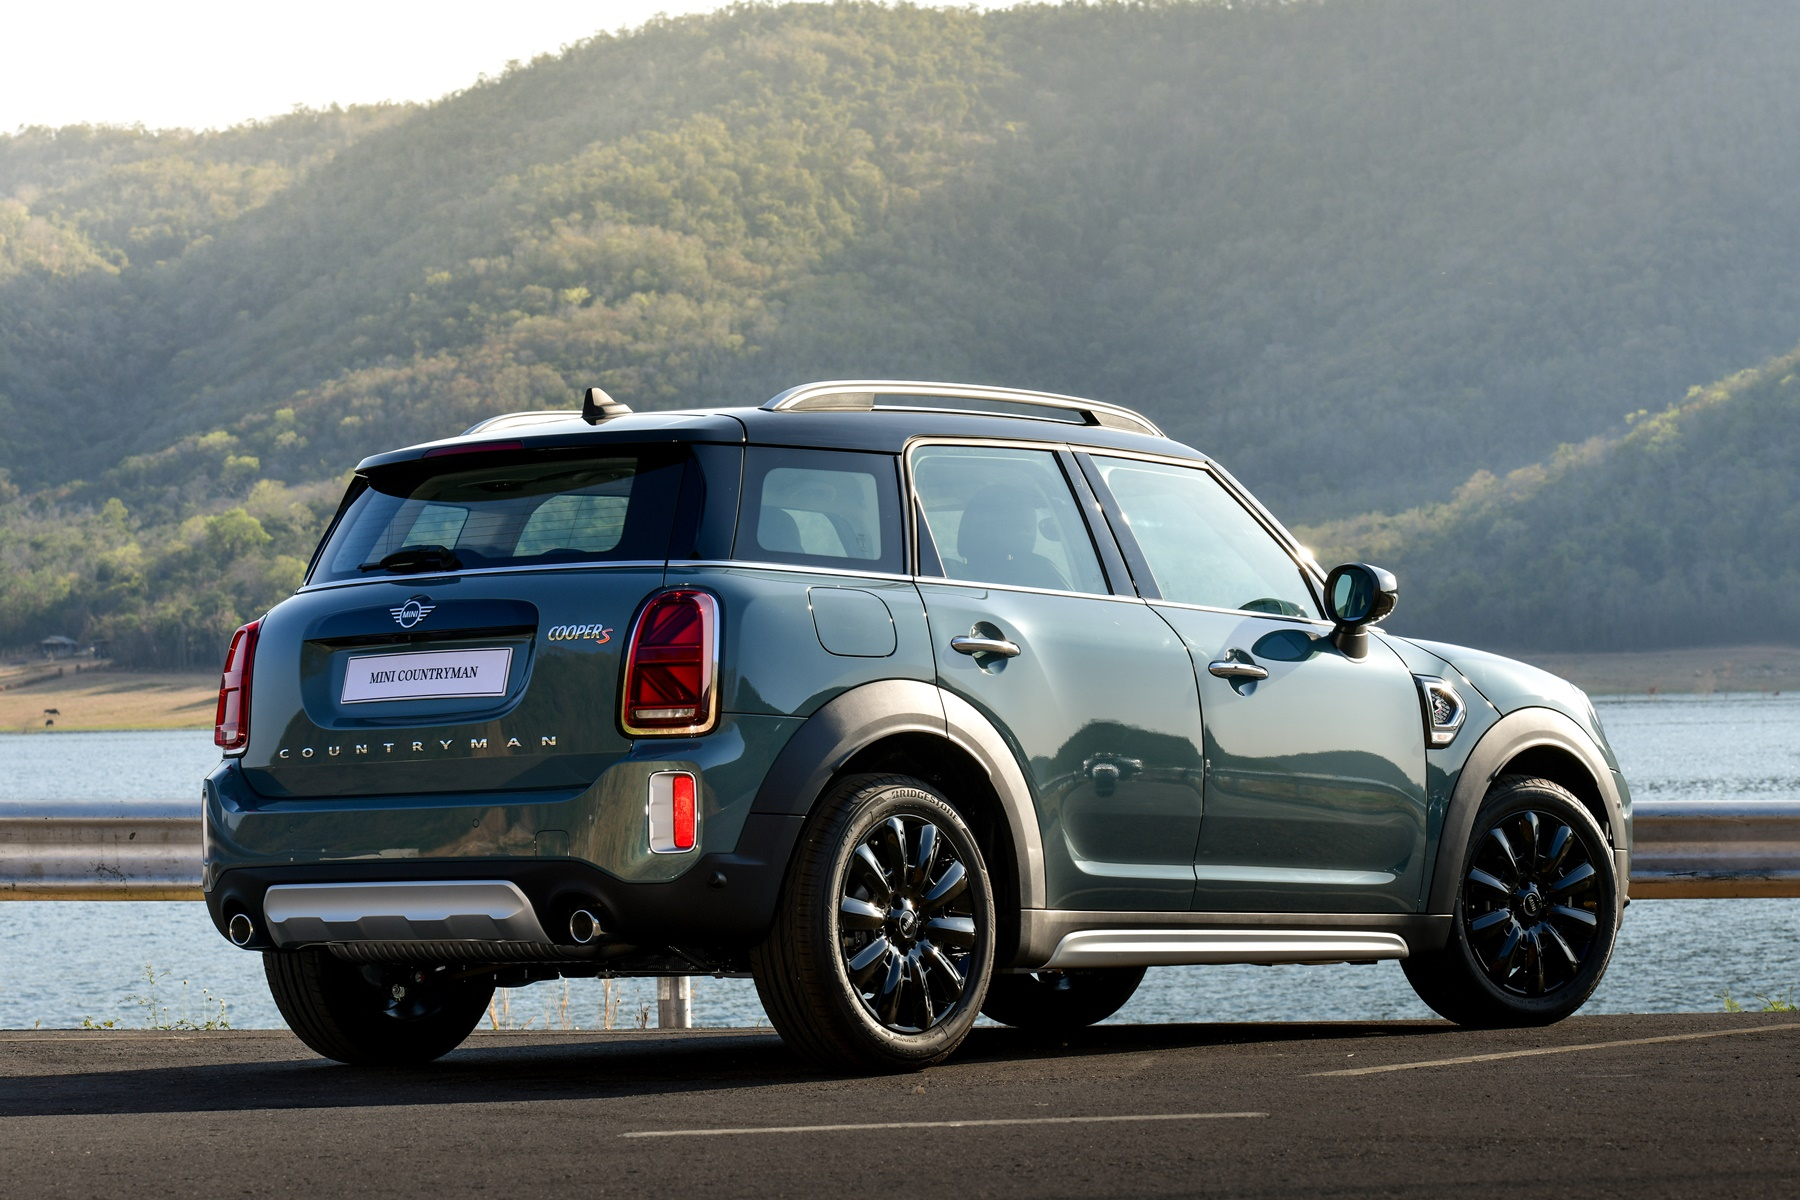 MINI Cooper S Countryman (38)